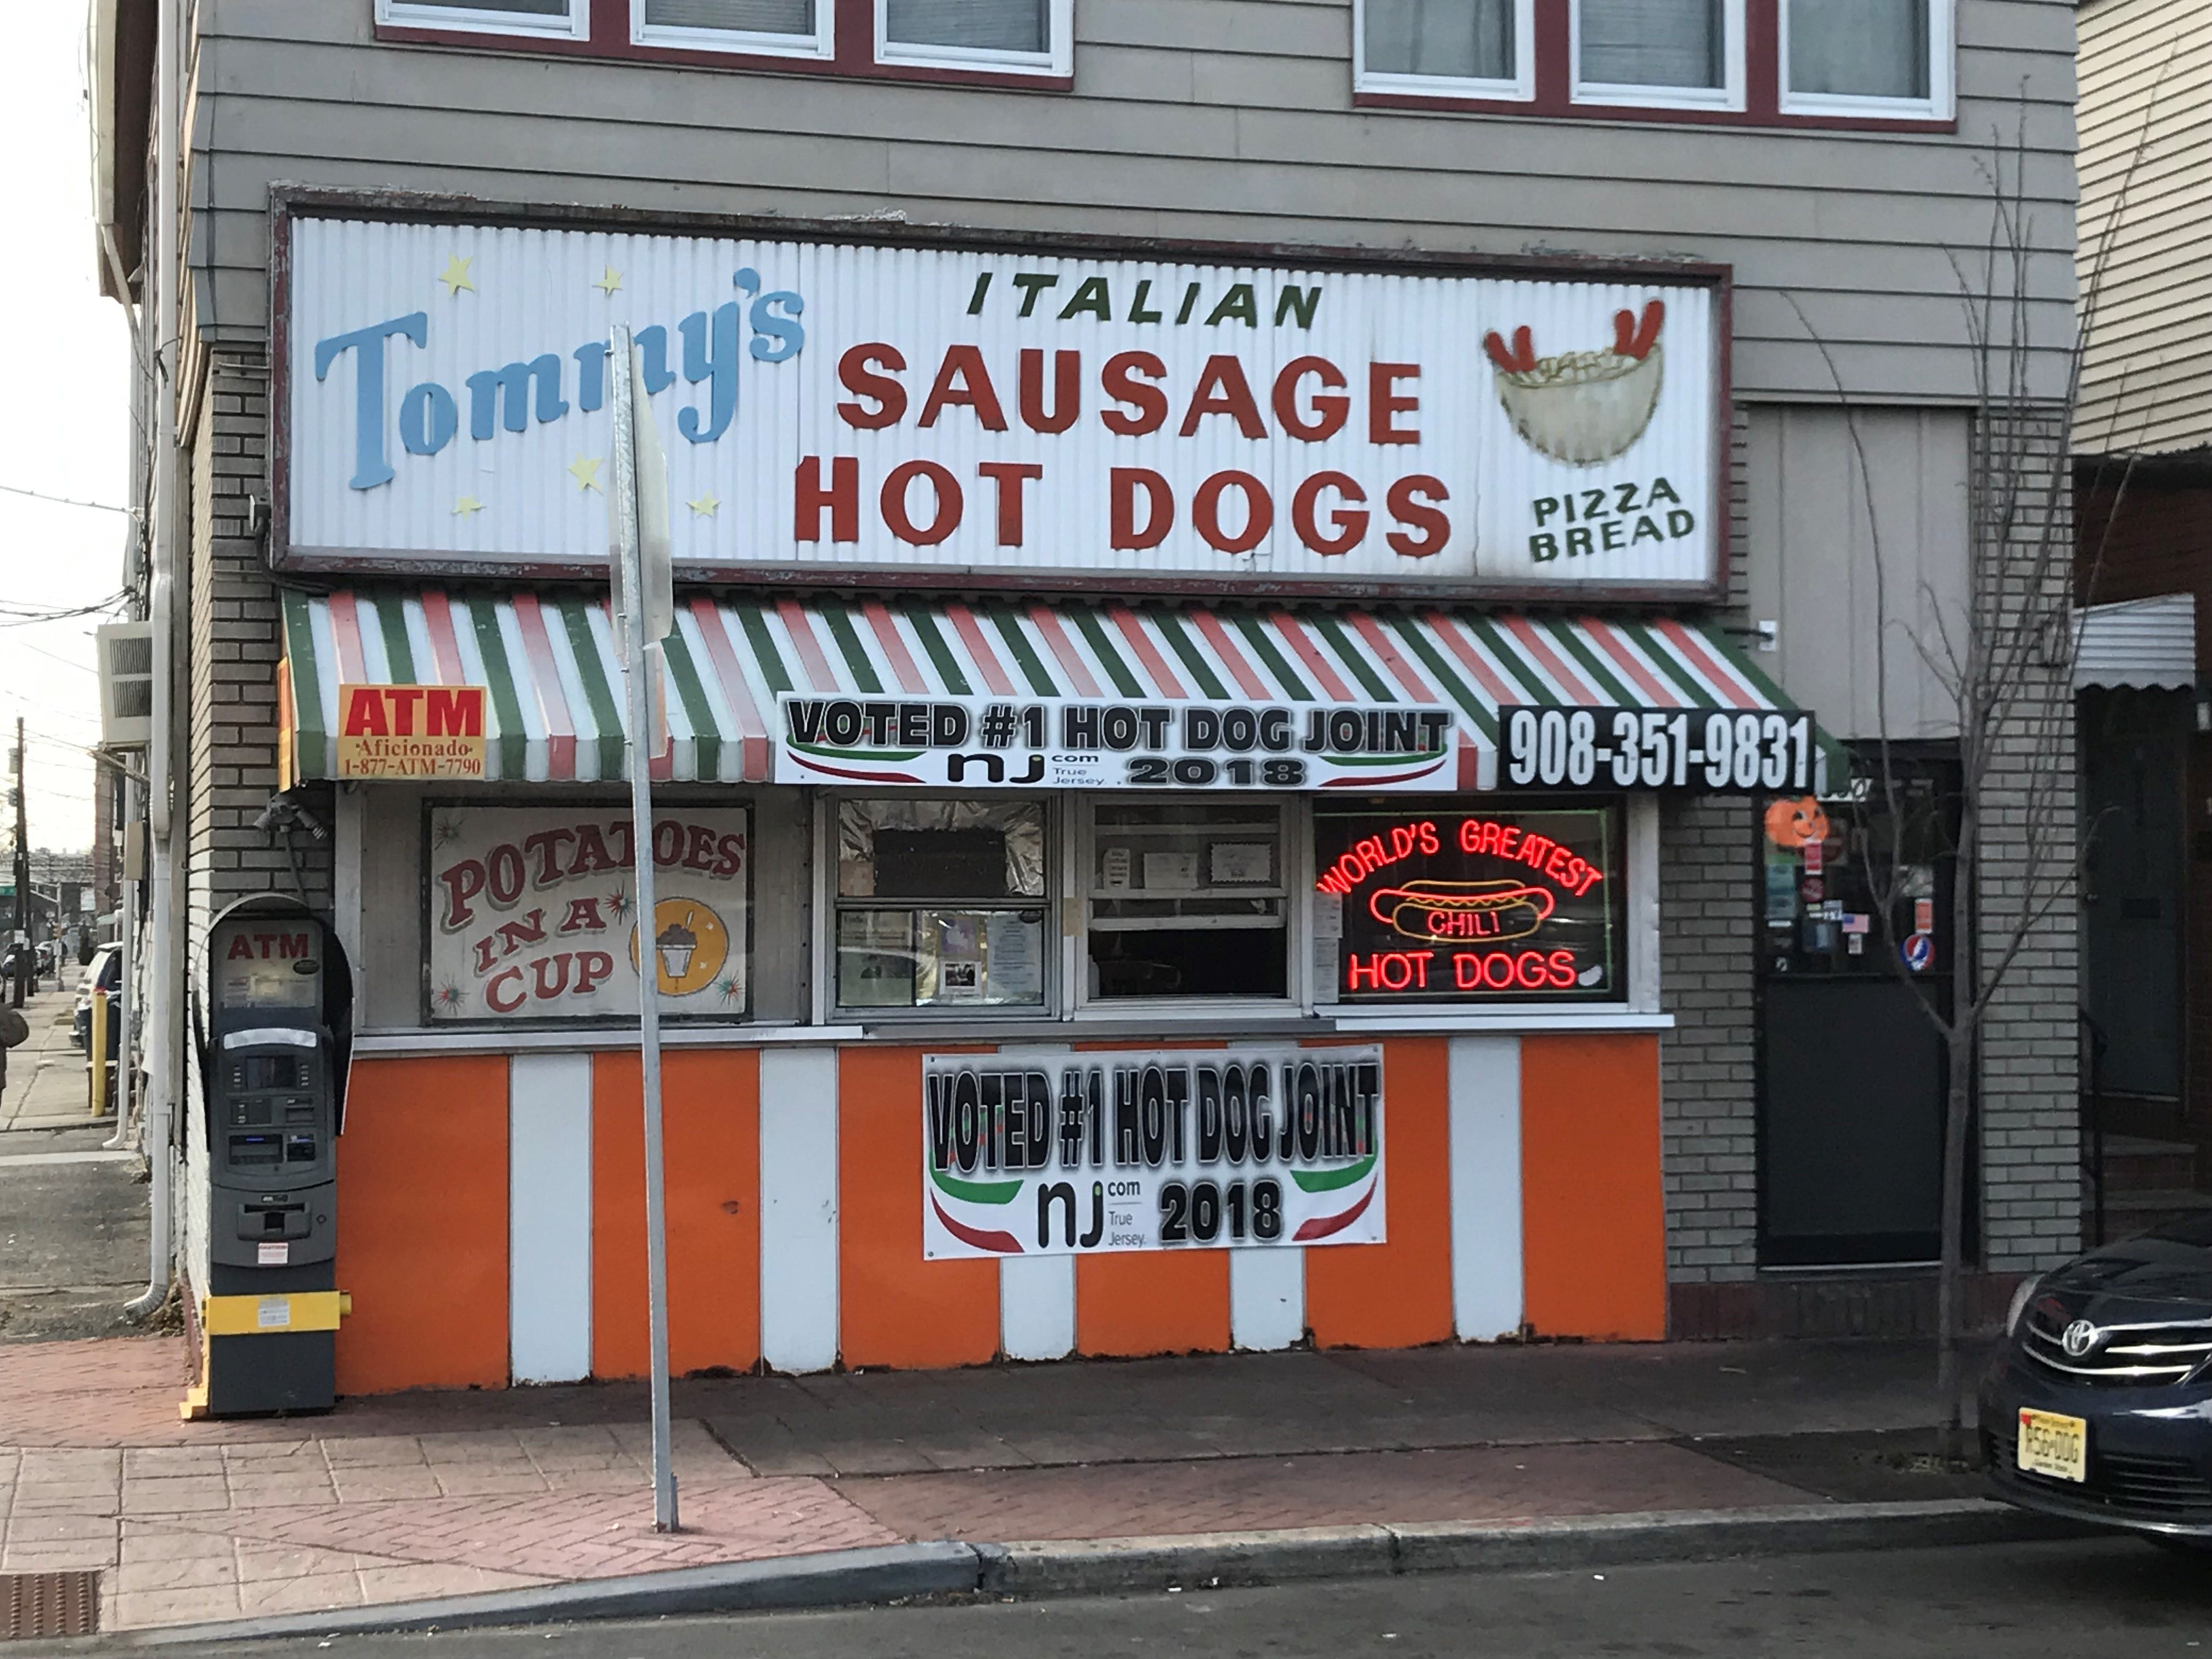 At Tommy's you order at the counter and take your food to go – there is no inside.